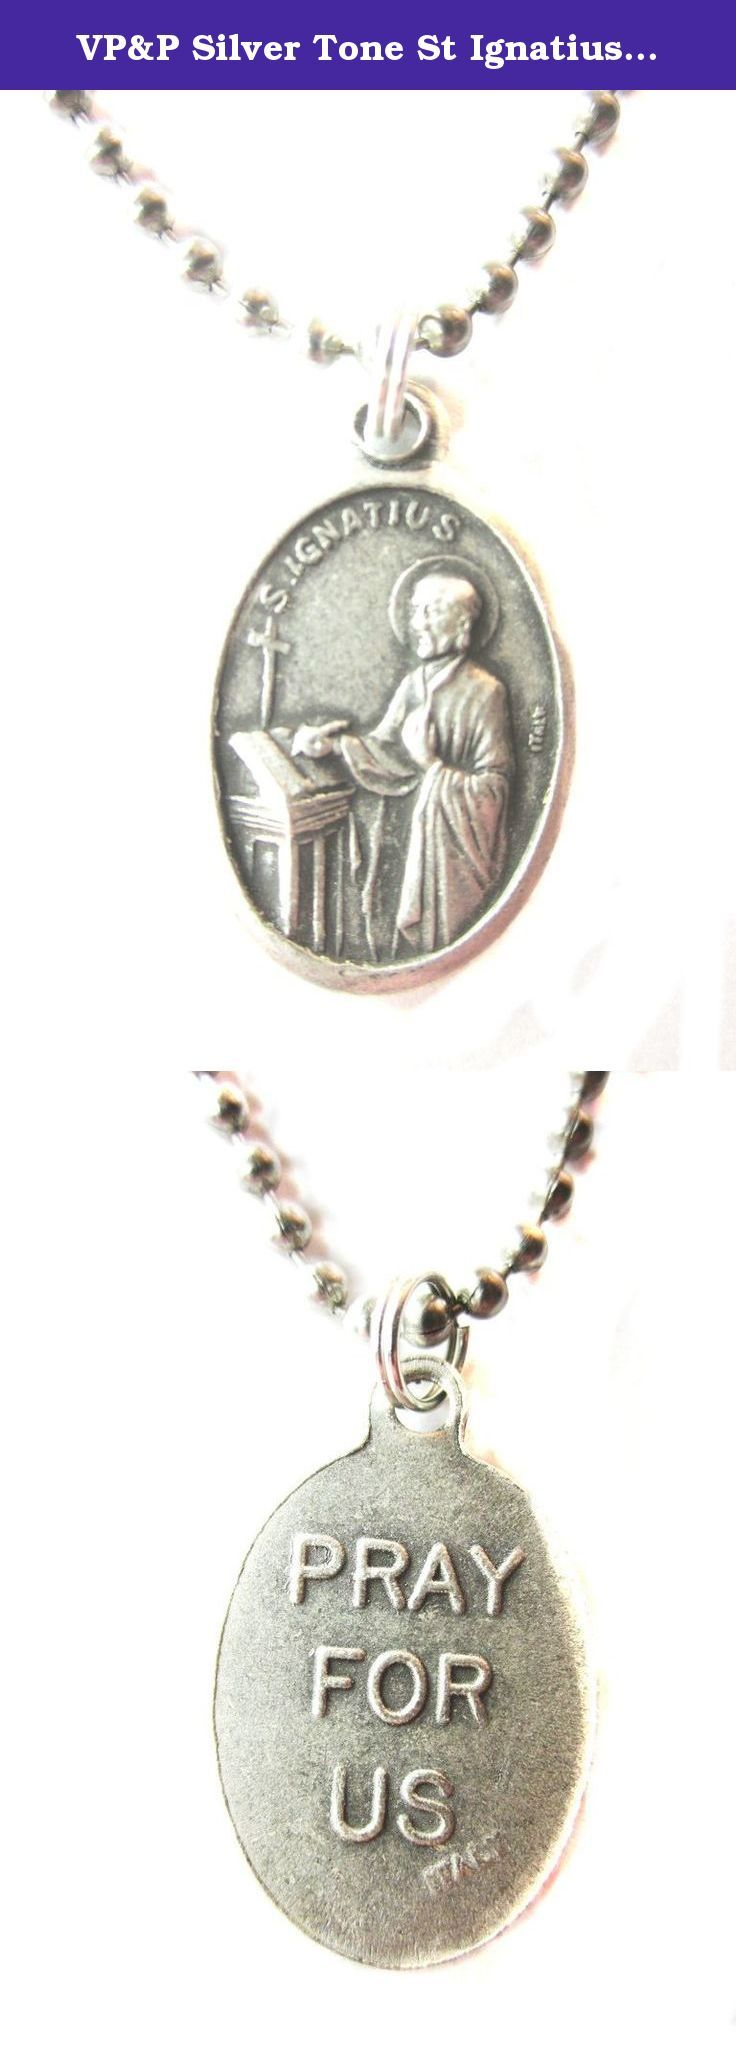 """VP&P Silver Tone St Ignatius of Loyola / Pray for Us Medal Pendant Necklace 24"""" Ball Chain. Die-cast oxidized medal made in Italy, on a 24"""" Stainless Steel Ball chain, made in USA. Patron Saint of Society of Jesus, Education, Teachers, Soldiers. Prayer card included."""